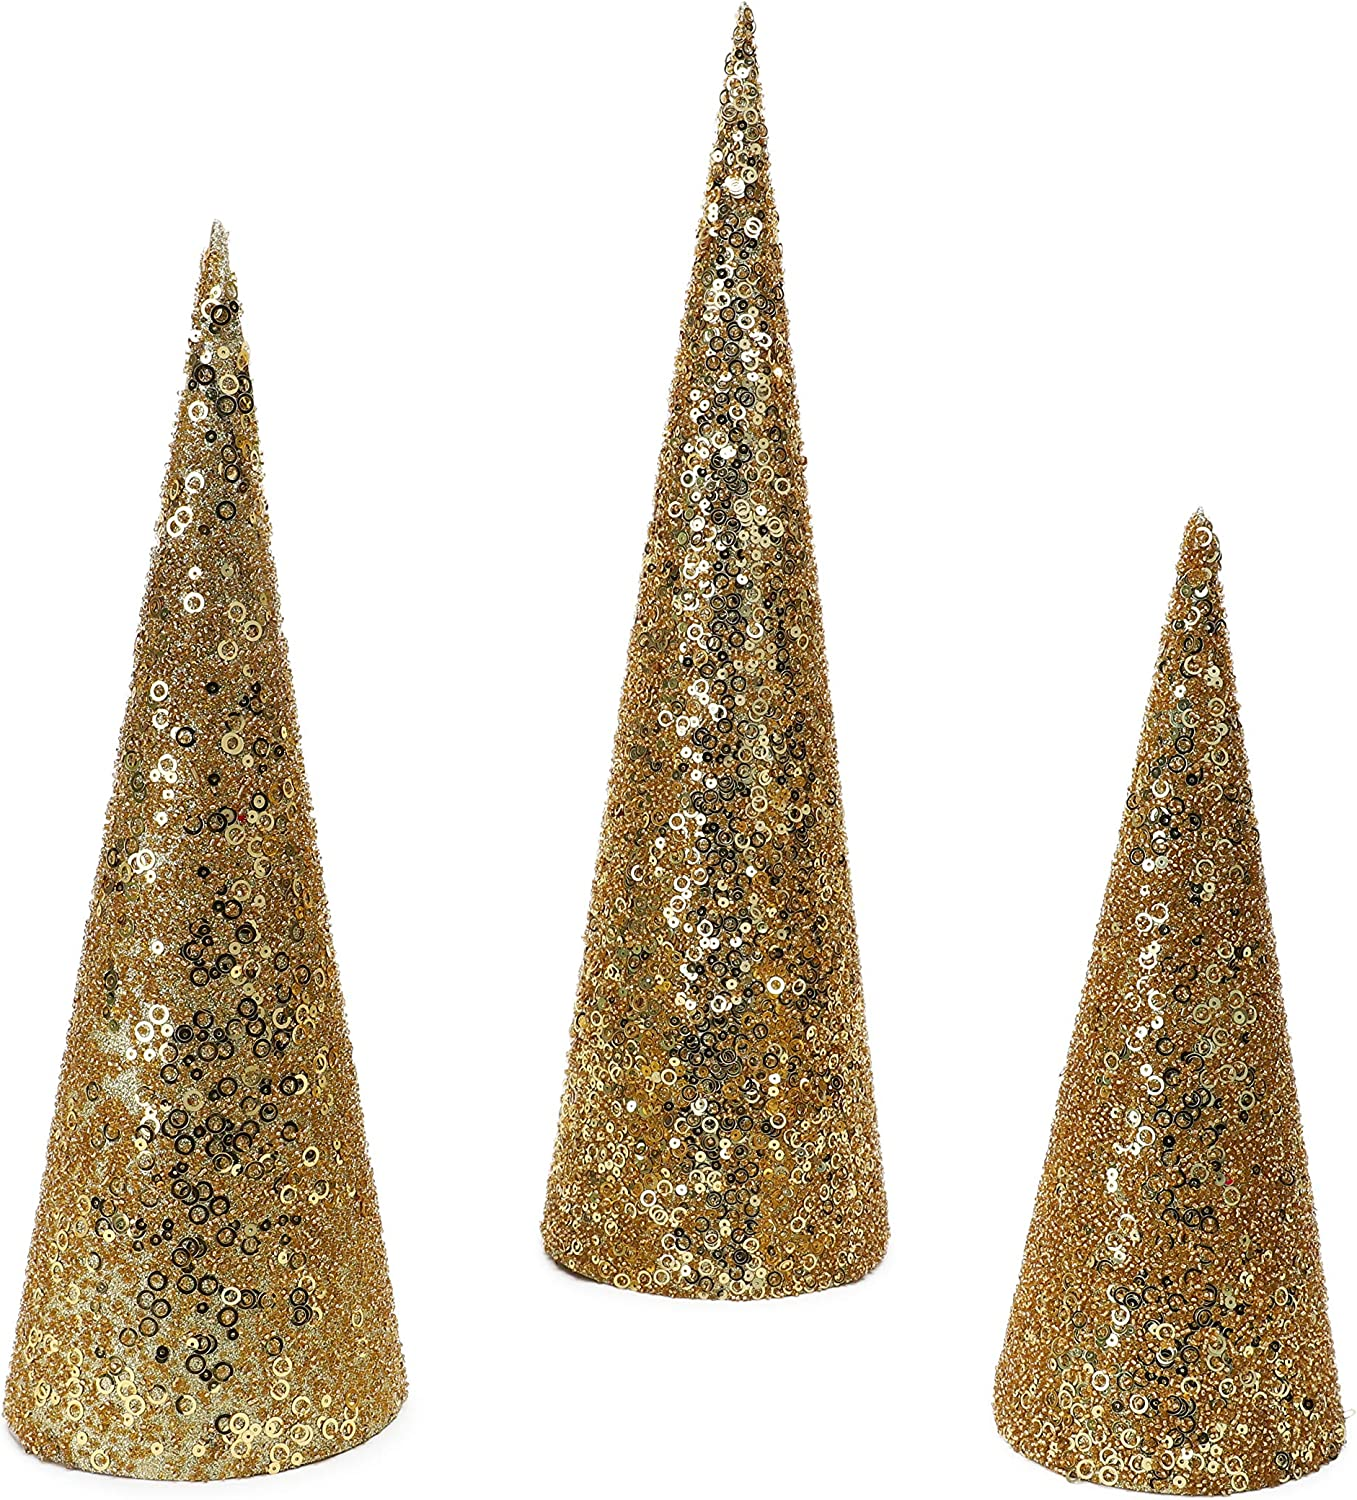 Christmas Concepts Set New arrival of 3 Trees De Detroit Mall Various Size Cone